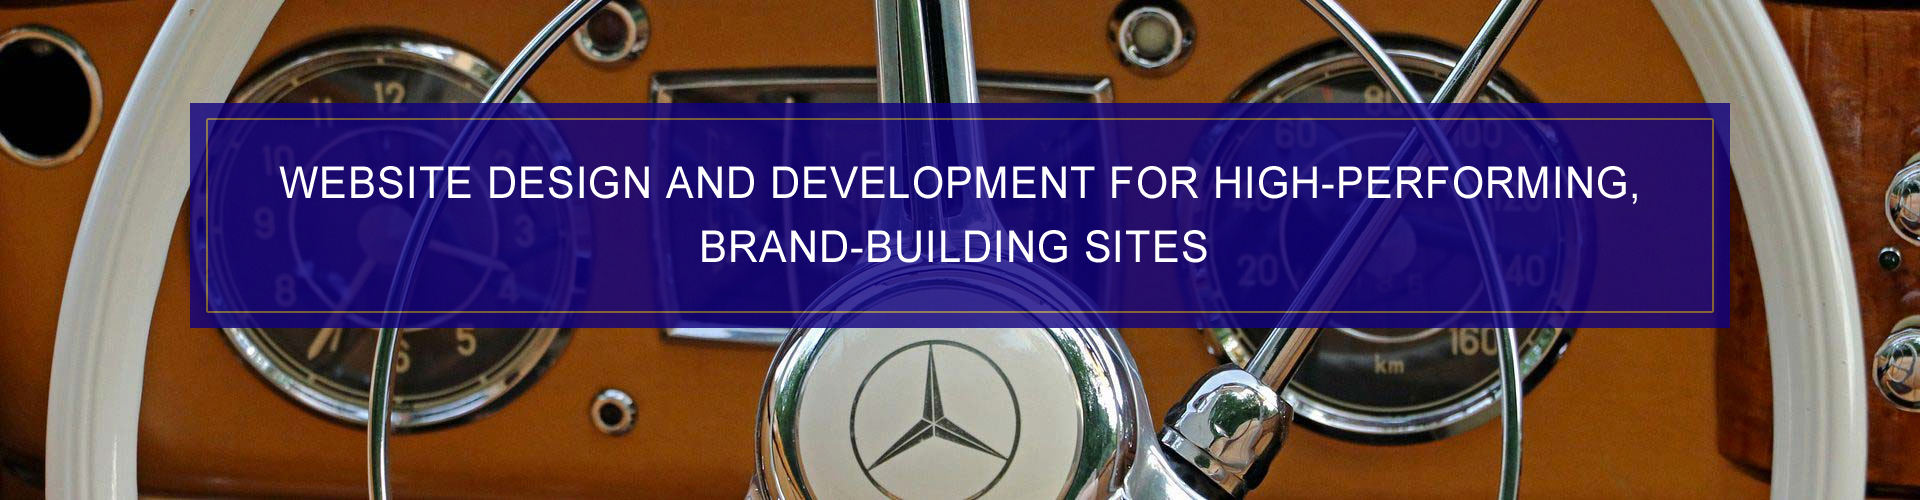 Dashboard Interactive - Website Design Development High Performing Brand Building Sites